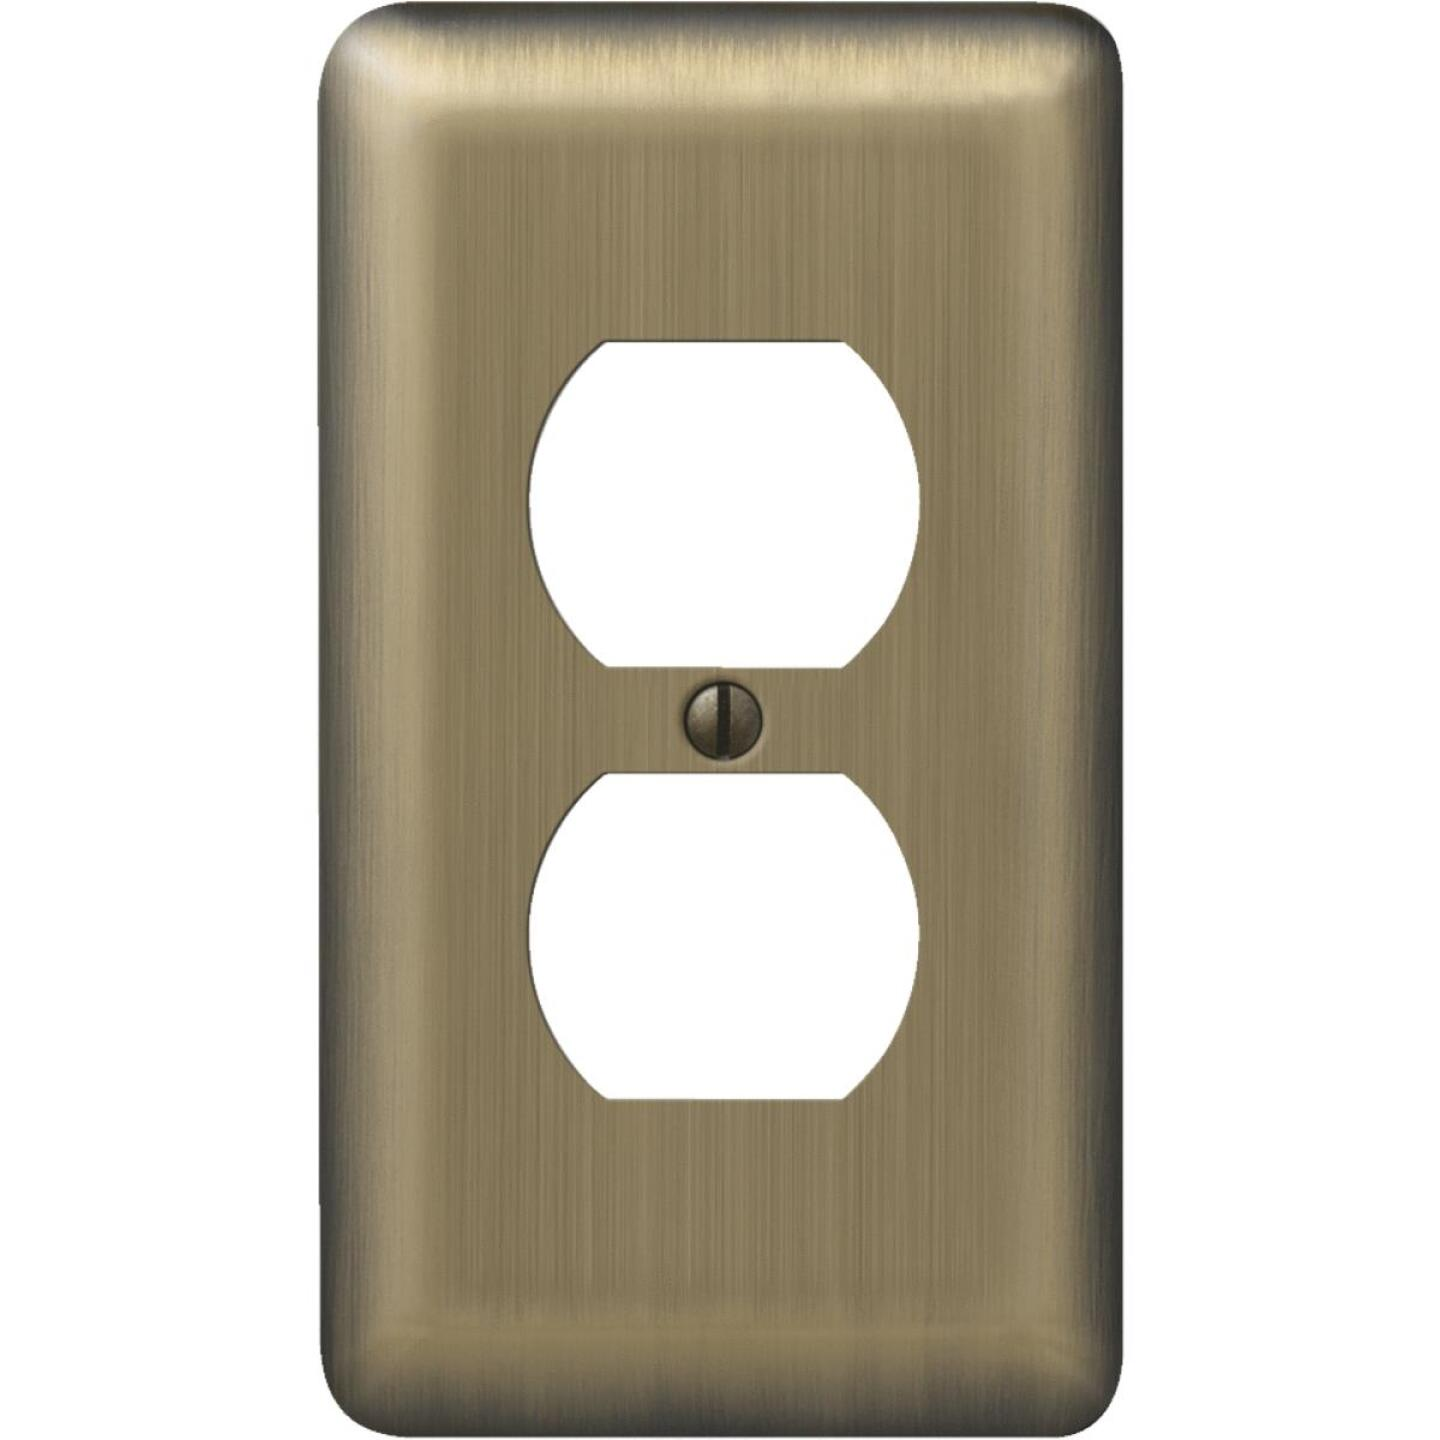 Amerelle 1-Gang Stamped Steel Outlet Wall Plate, Brushed Brass Image 1